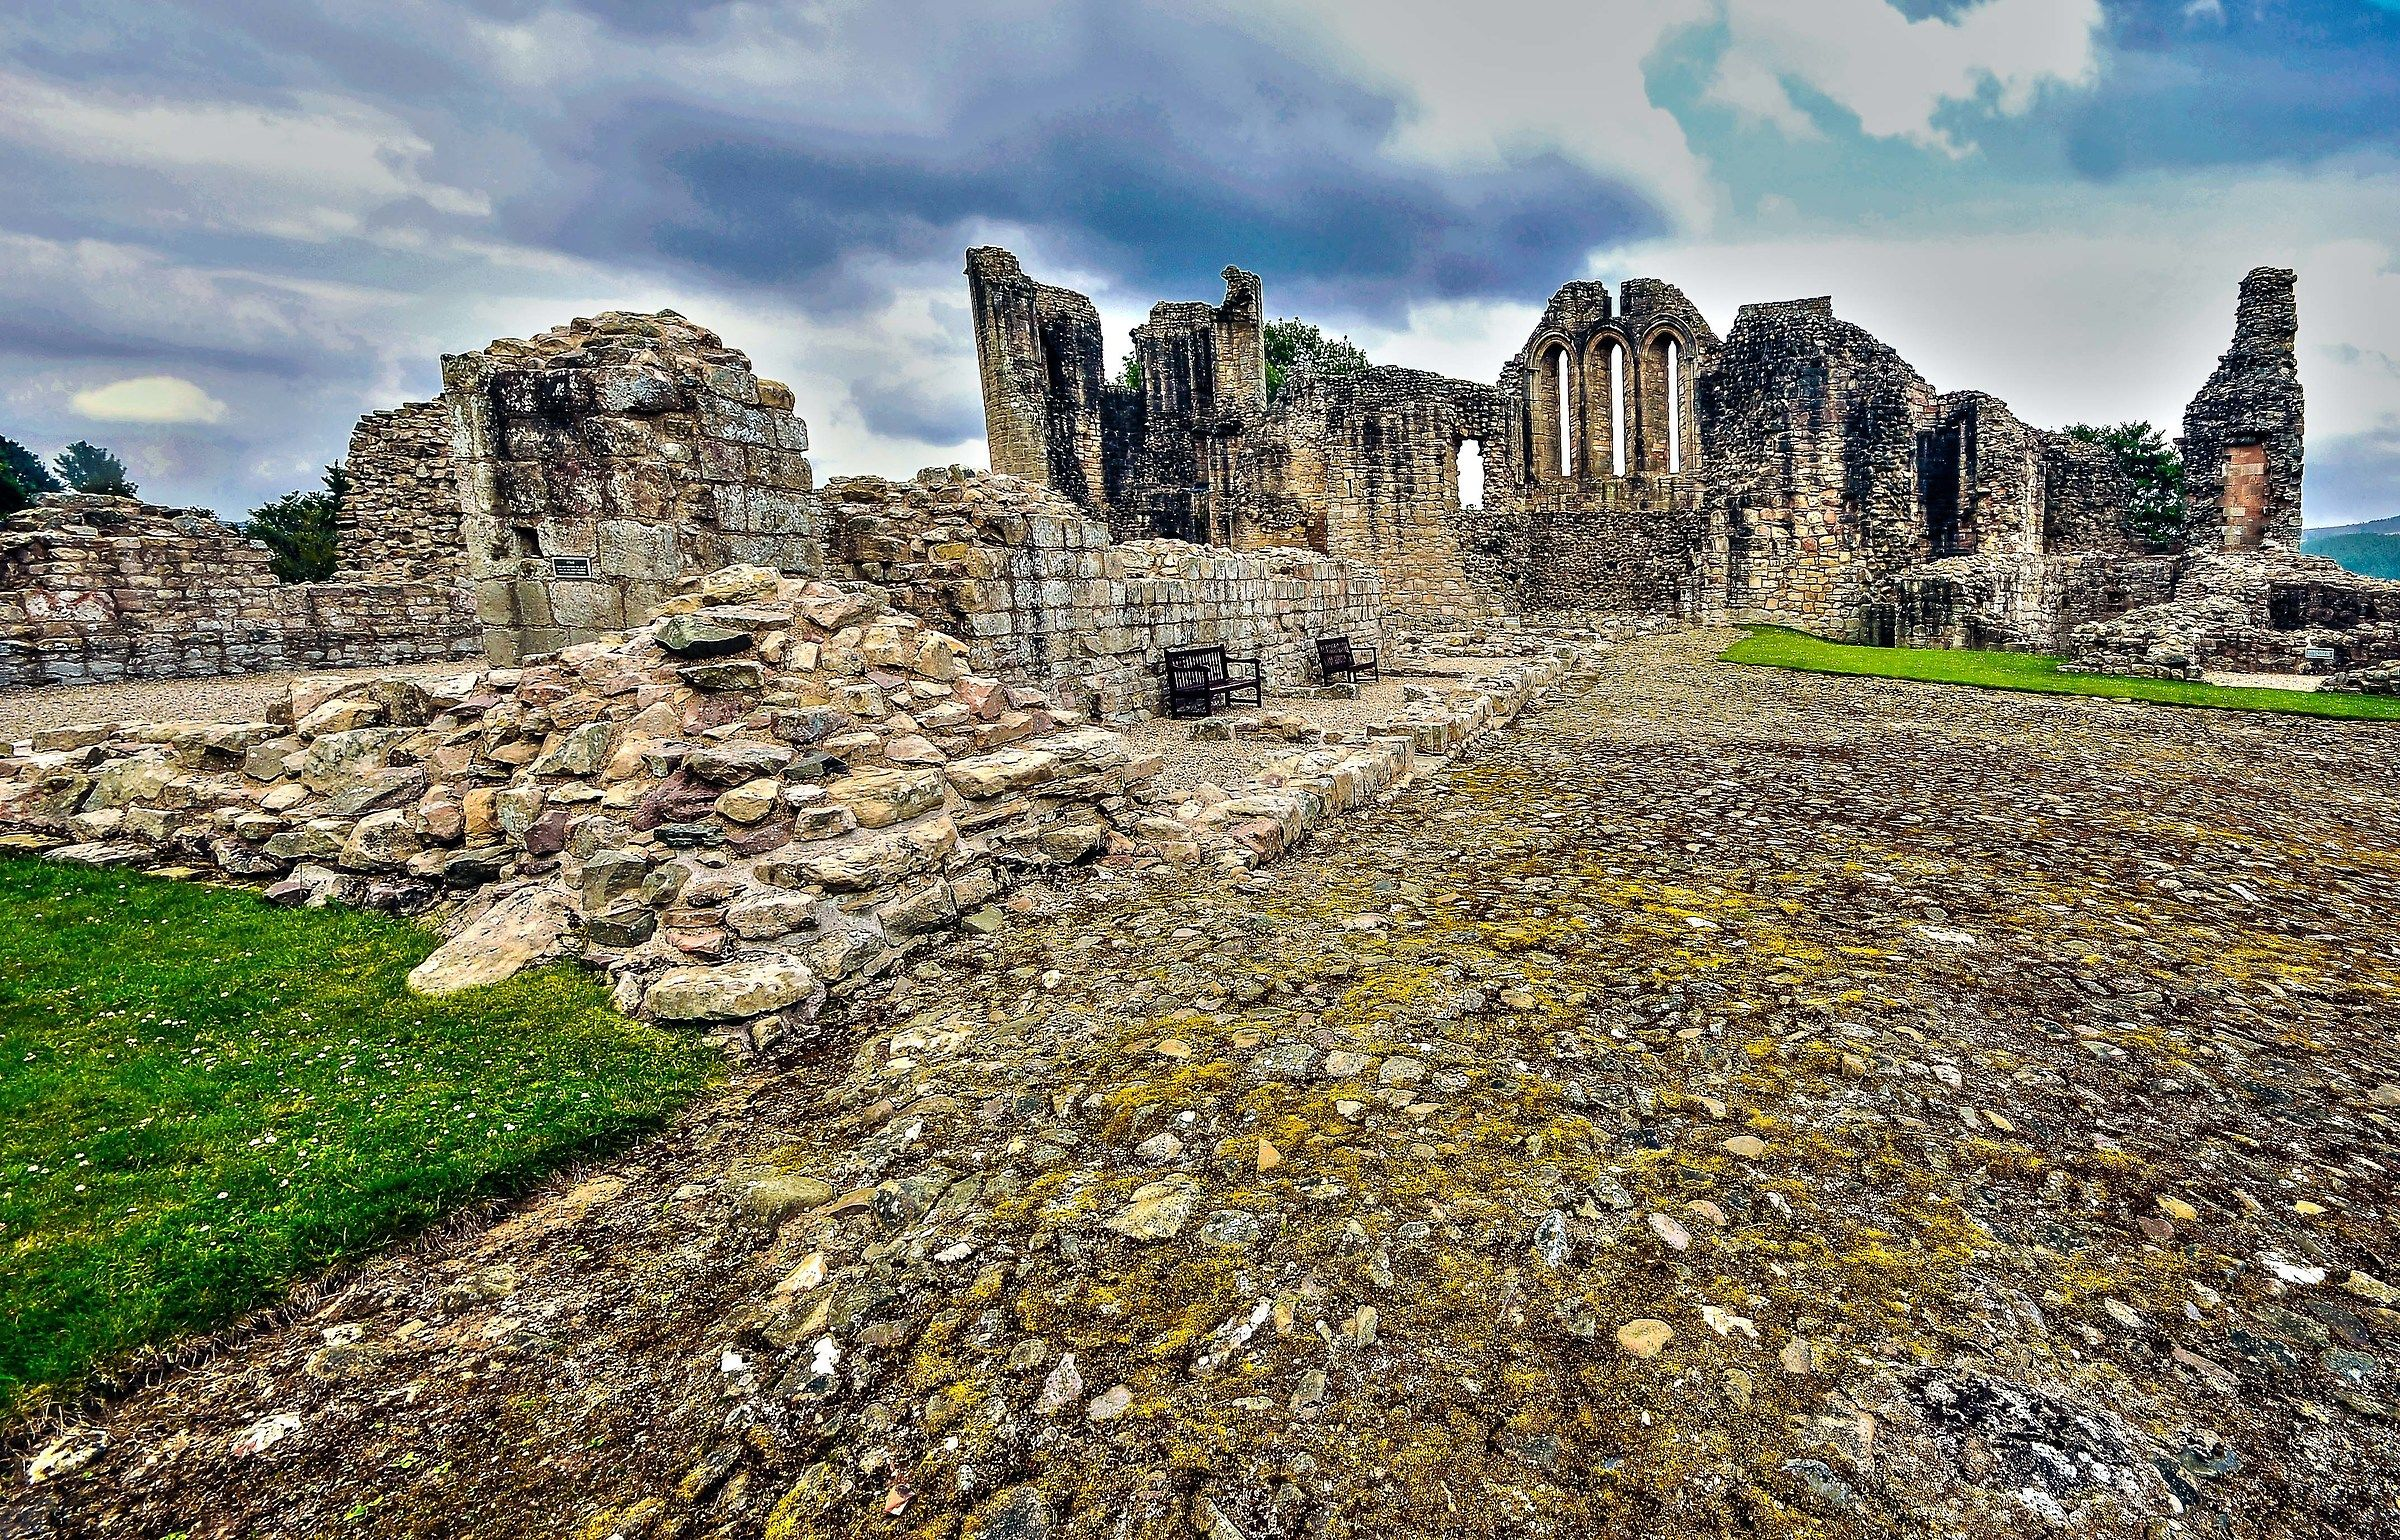 the remains of the Castle...